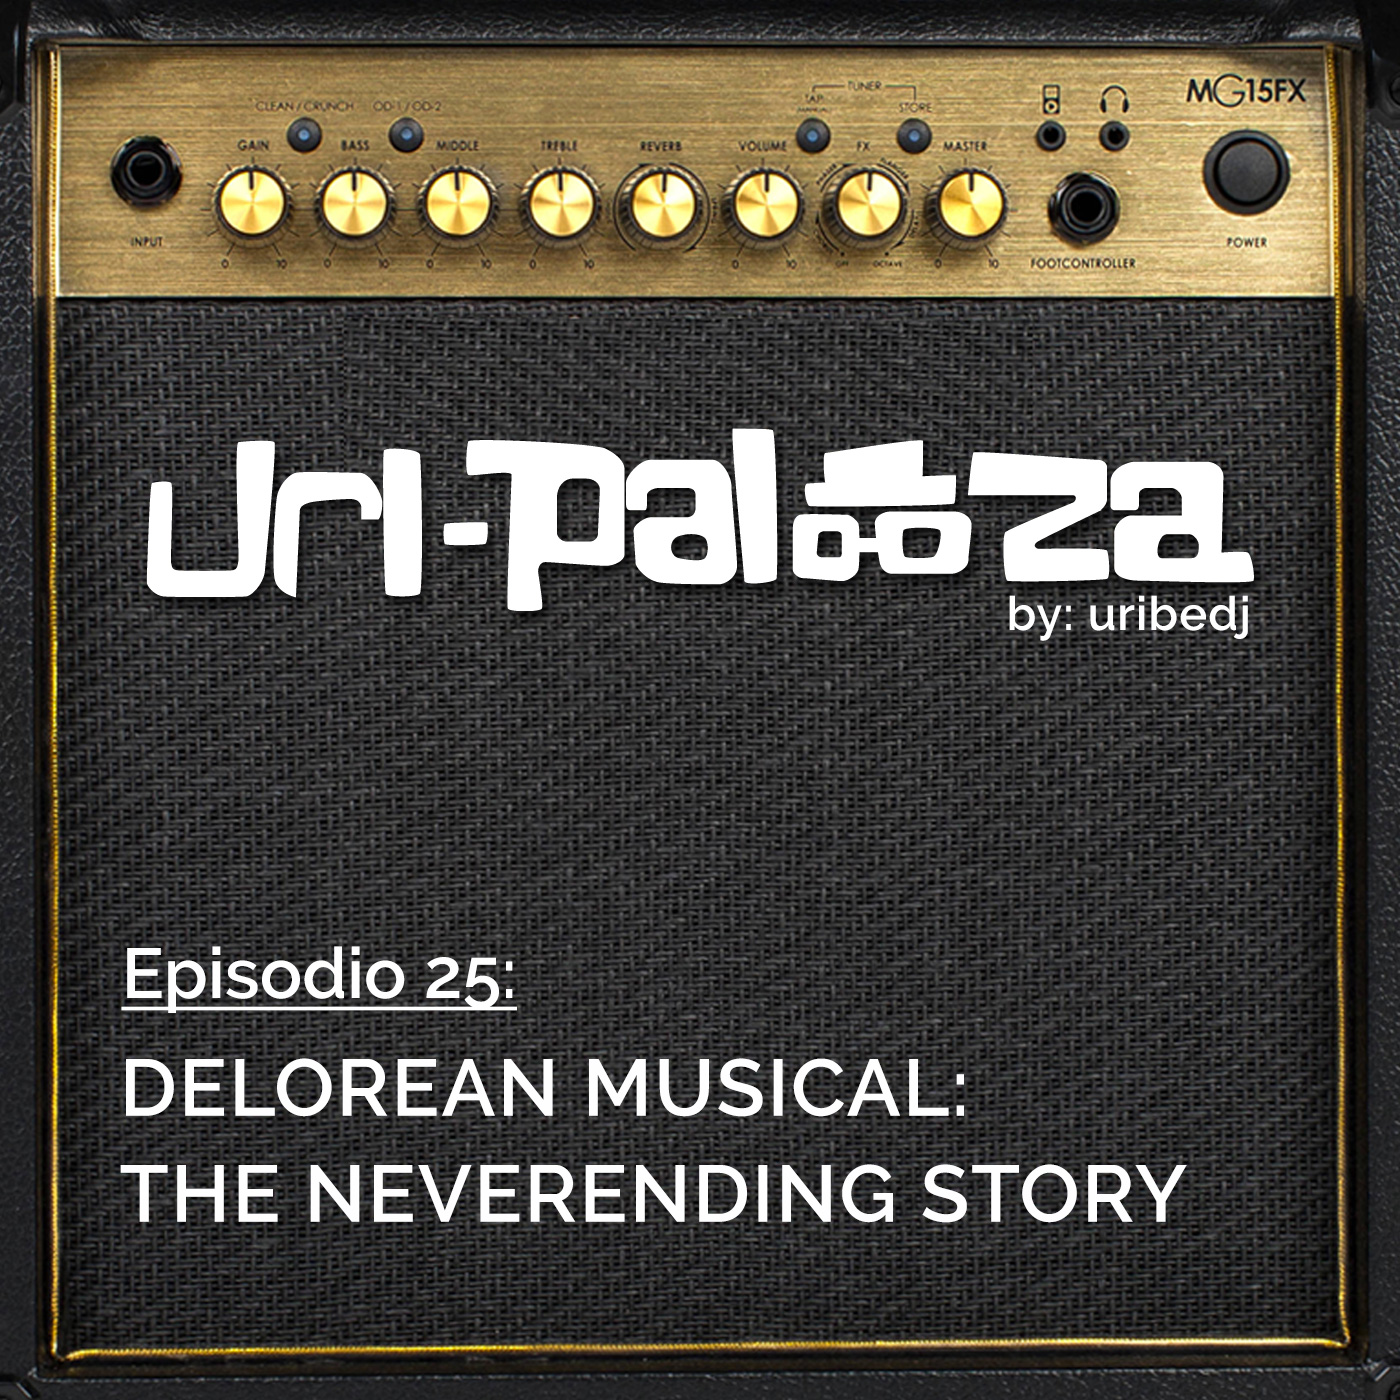 ícono podcast uripalooza Delorean The NeverEnding Story